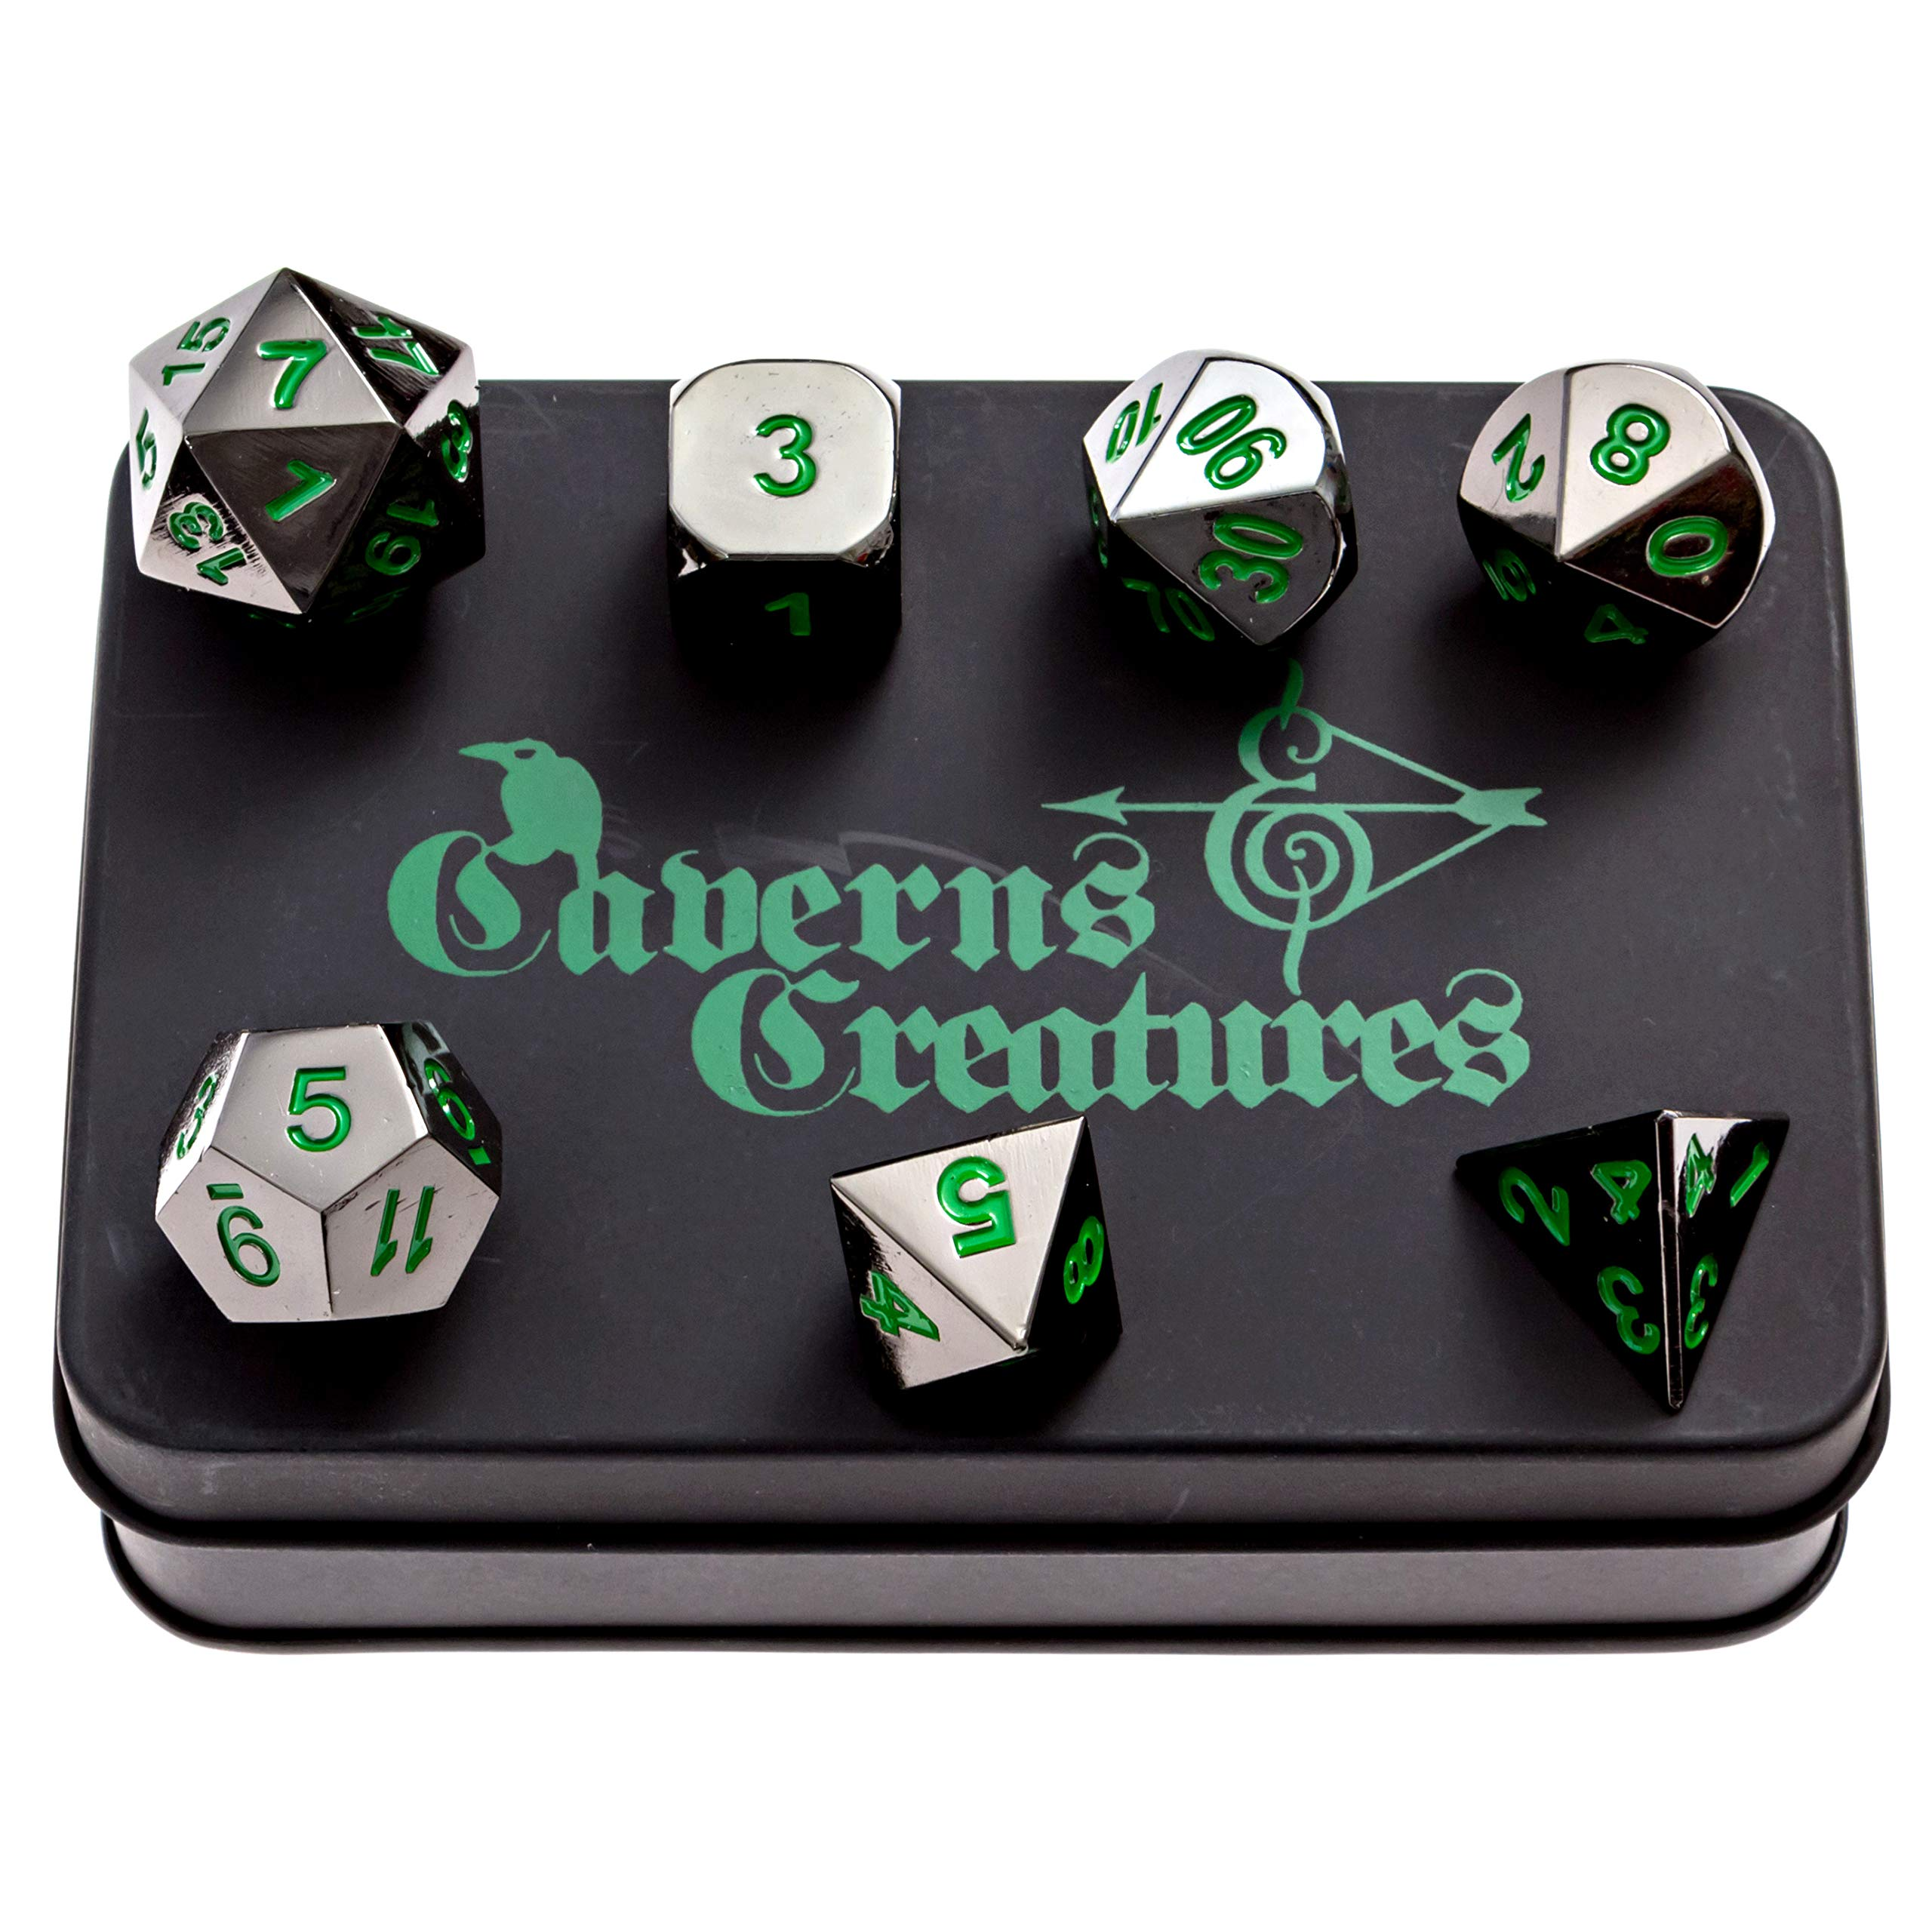 Caverns & Creatures Black Metal RPG Dice with Green Numbers in Stylish Tin Display Case